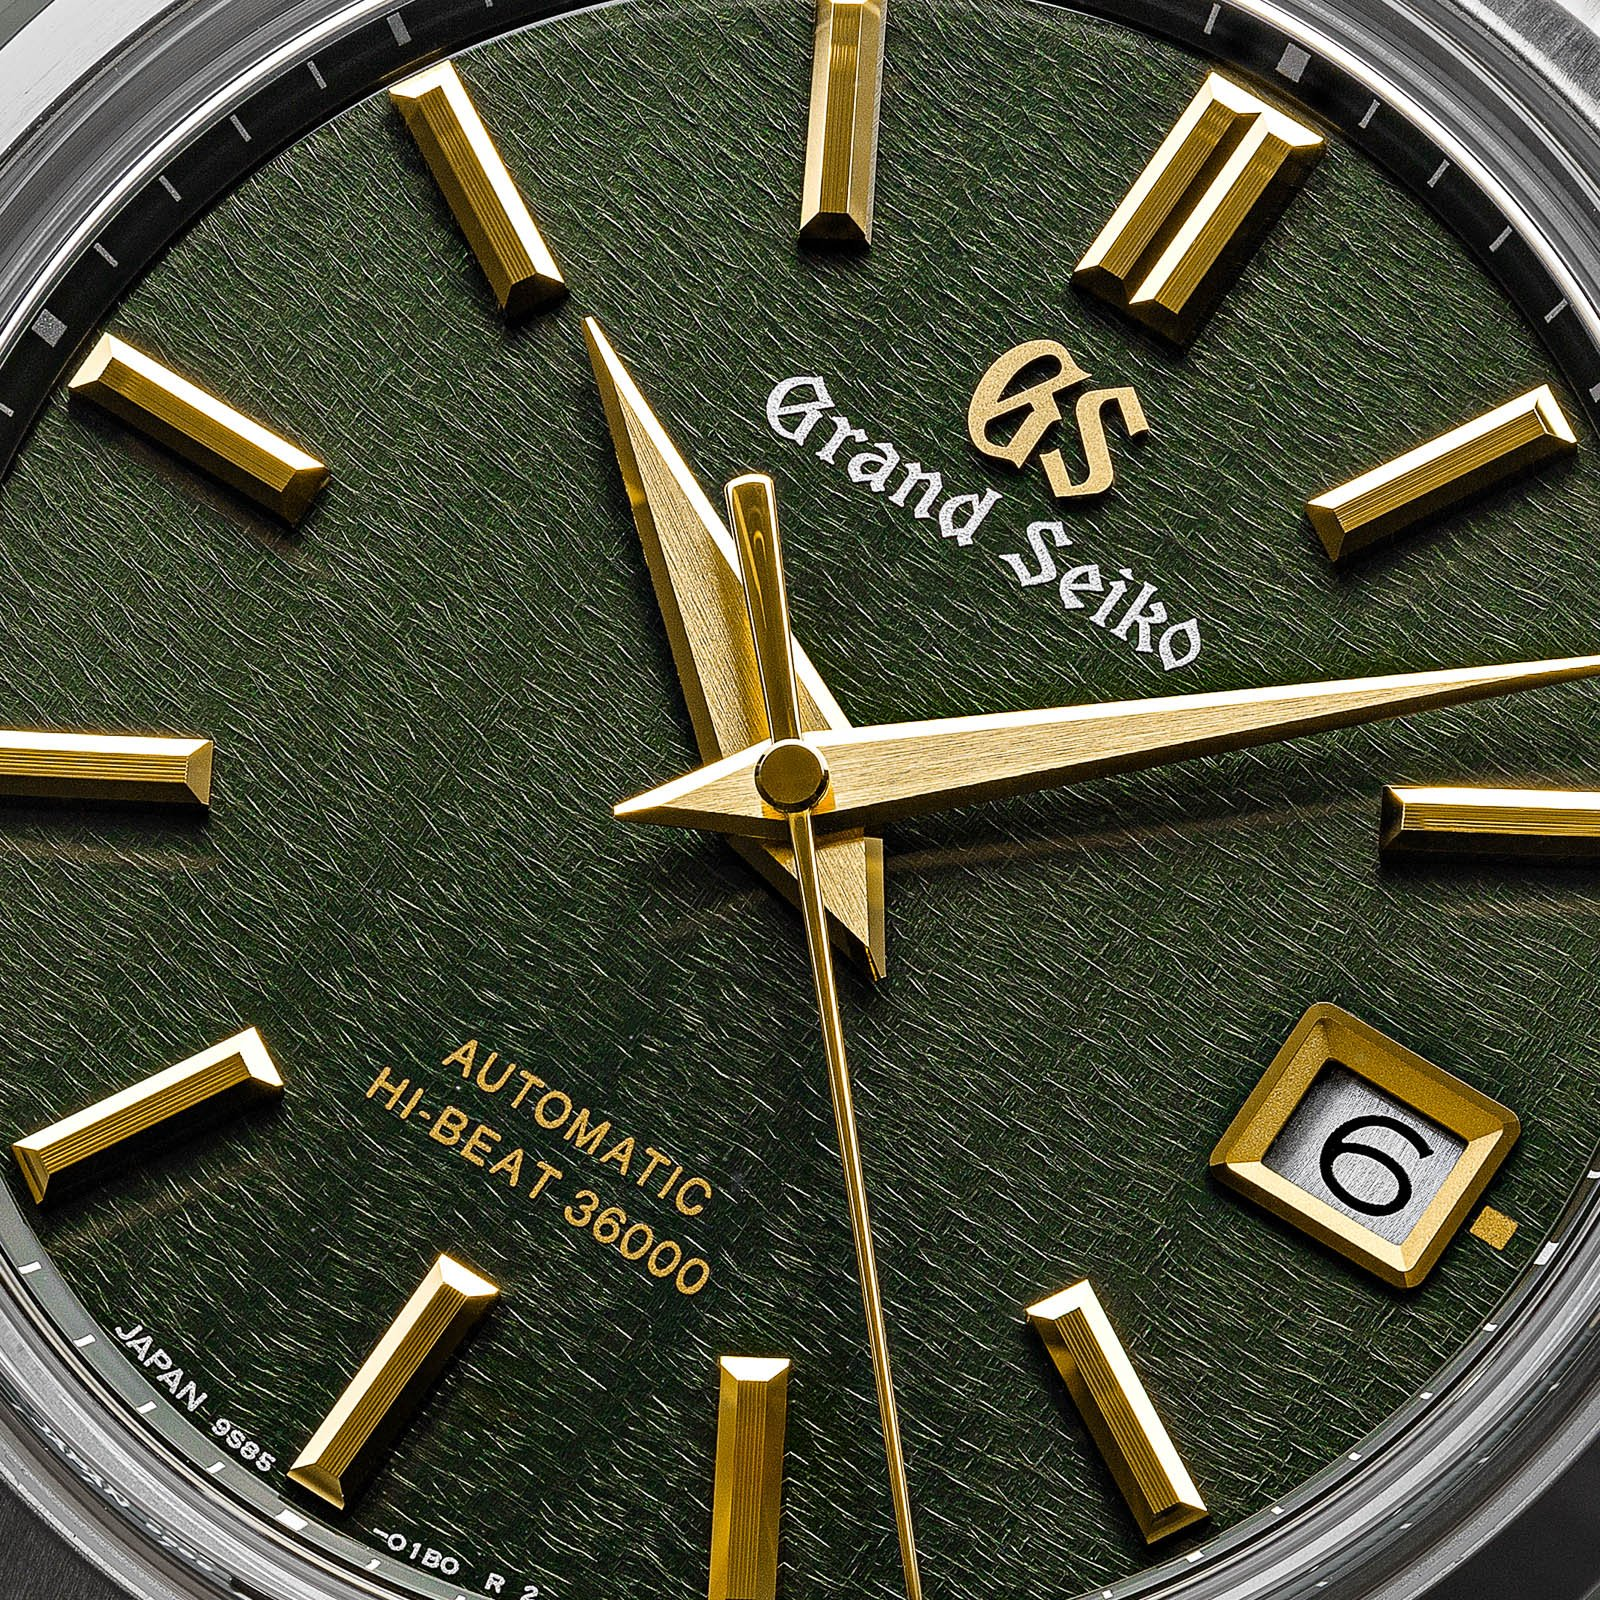 Green dial with gold-tone indexes and hands.